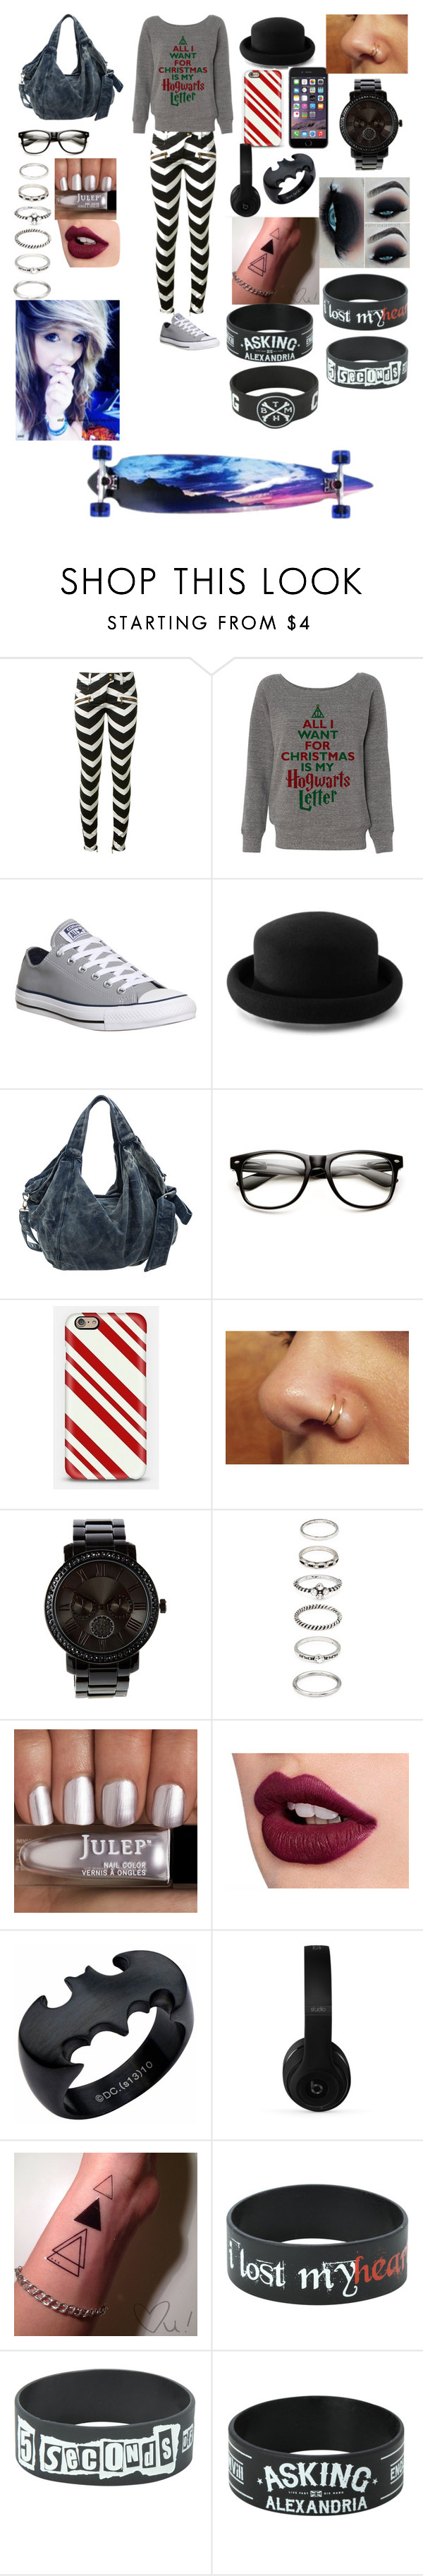 """Finals today...yay..."" by ashtonlovesbvb ❤ liked on Polyvore featuring Balmain, Converse, Warehouse, Forever 21 and Beats by Dr. Dre"